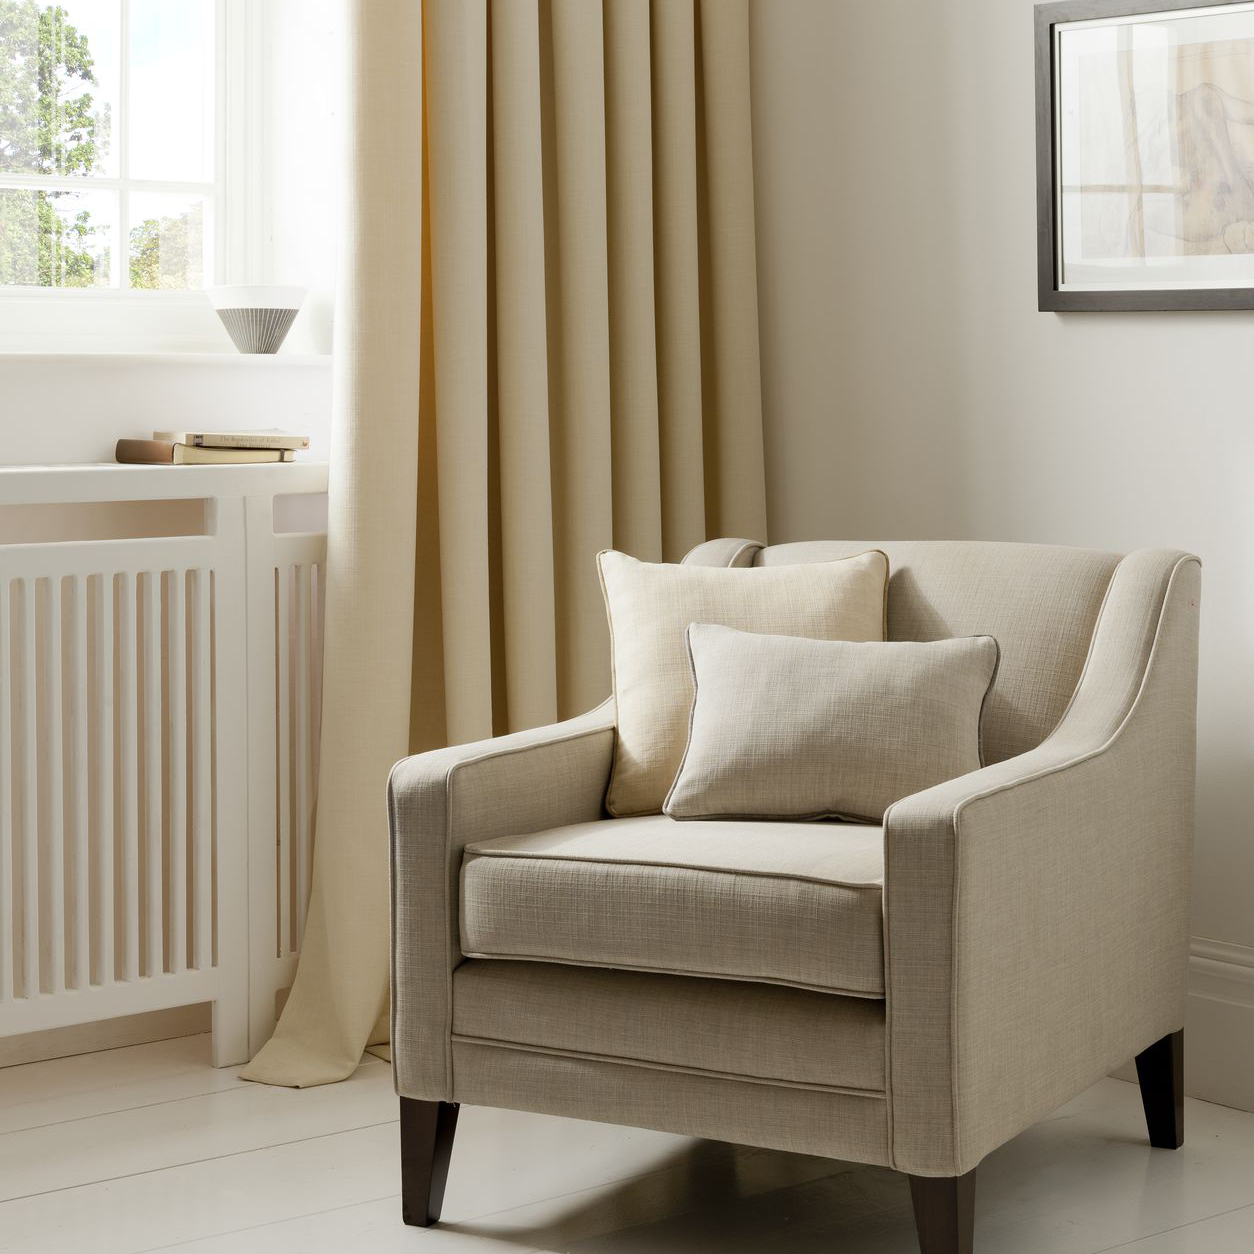 3 Linoso curtains, upholstery and cushions photoshoot square.jpg